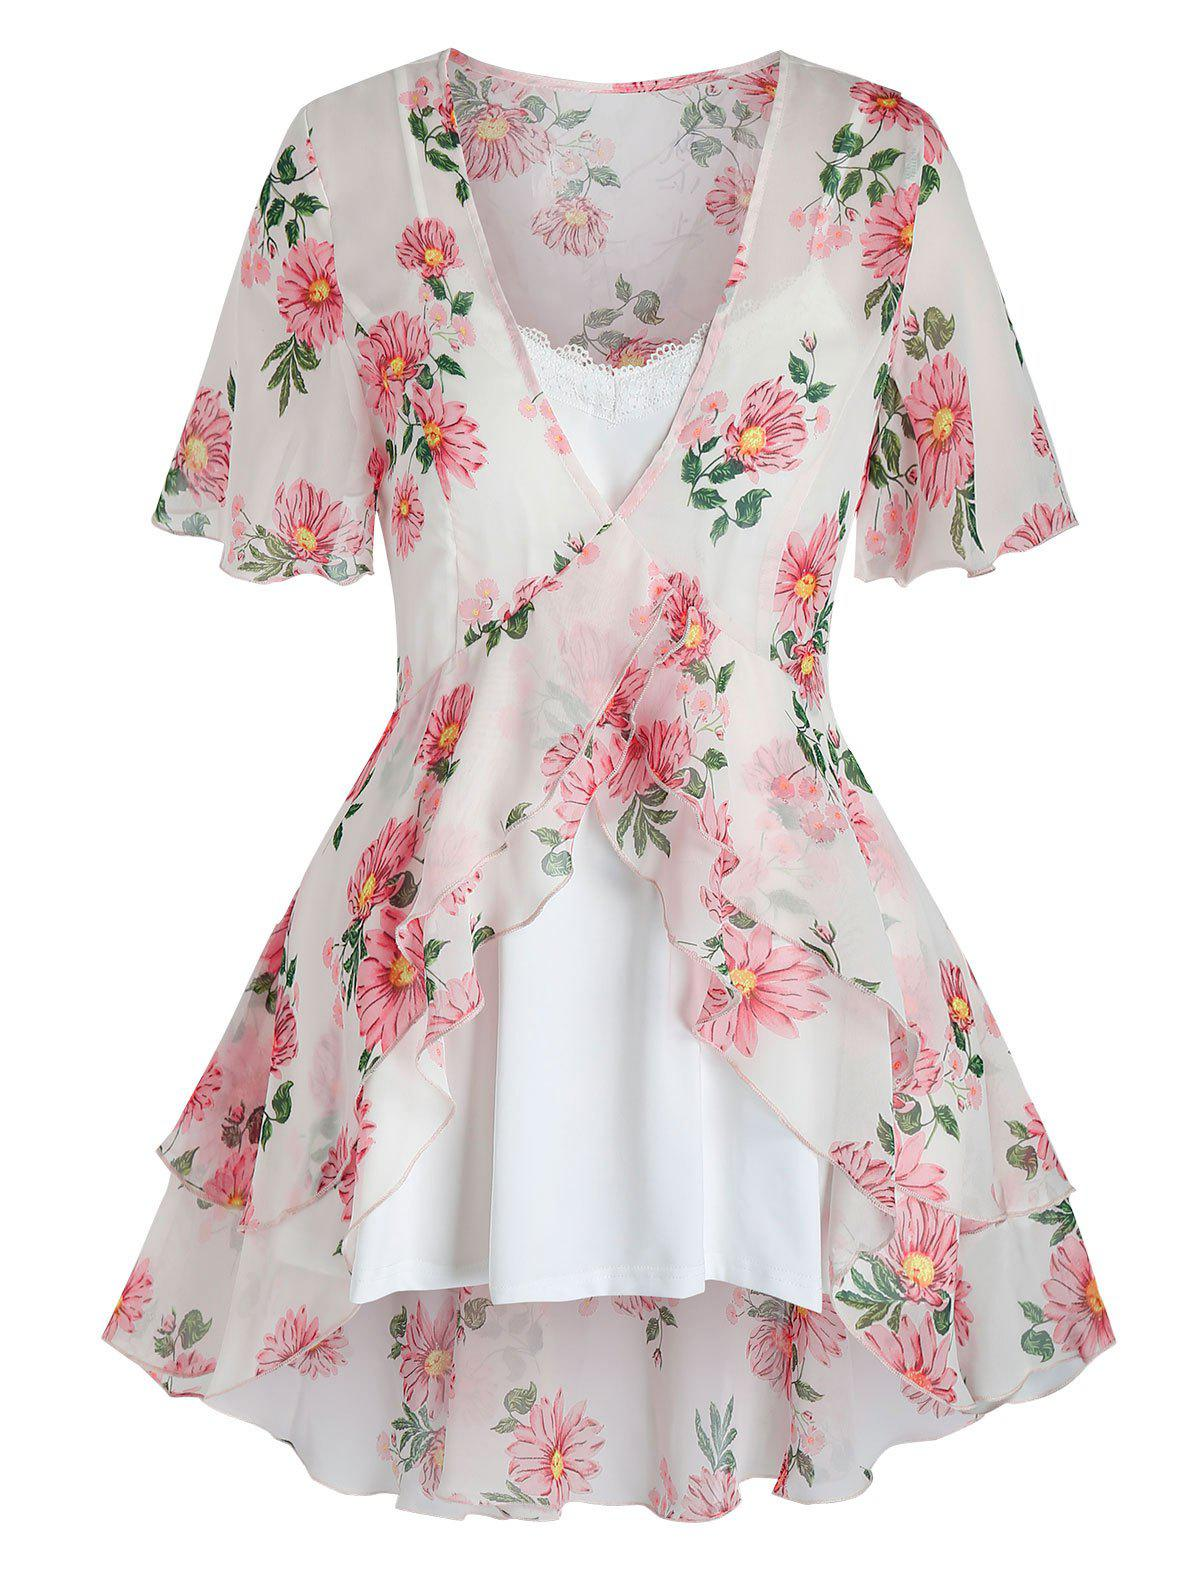 Plus Size Flower Sheer Flounce Blouse and Cami Top Set - WHITE 5X